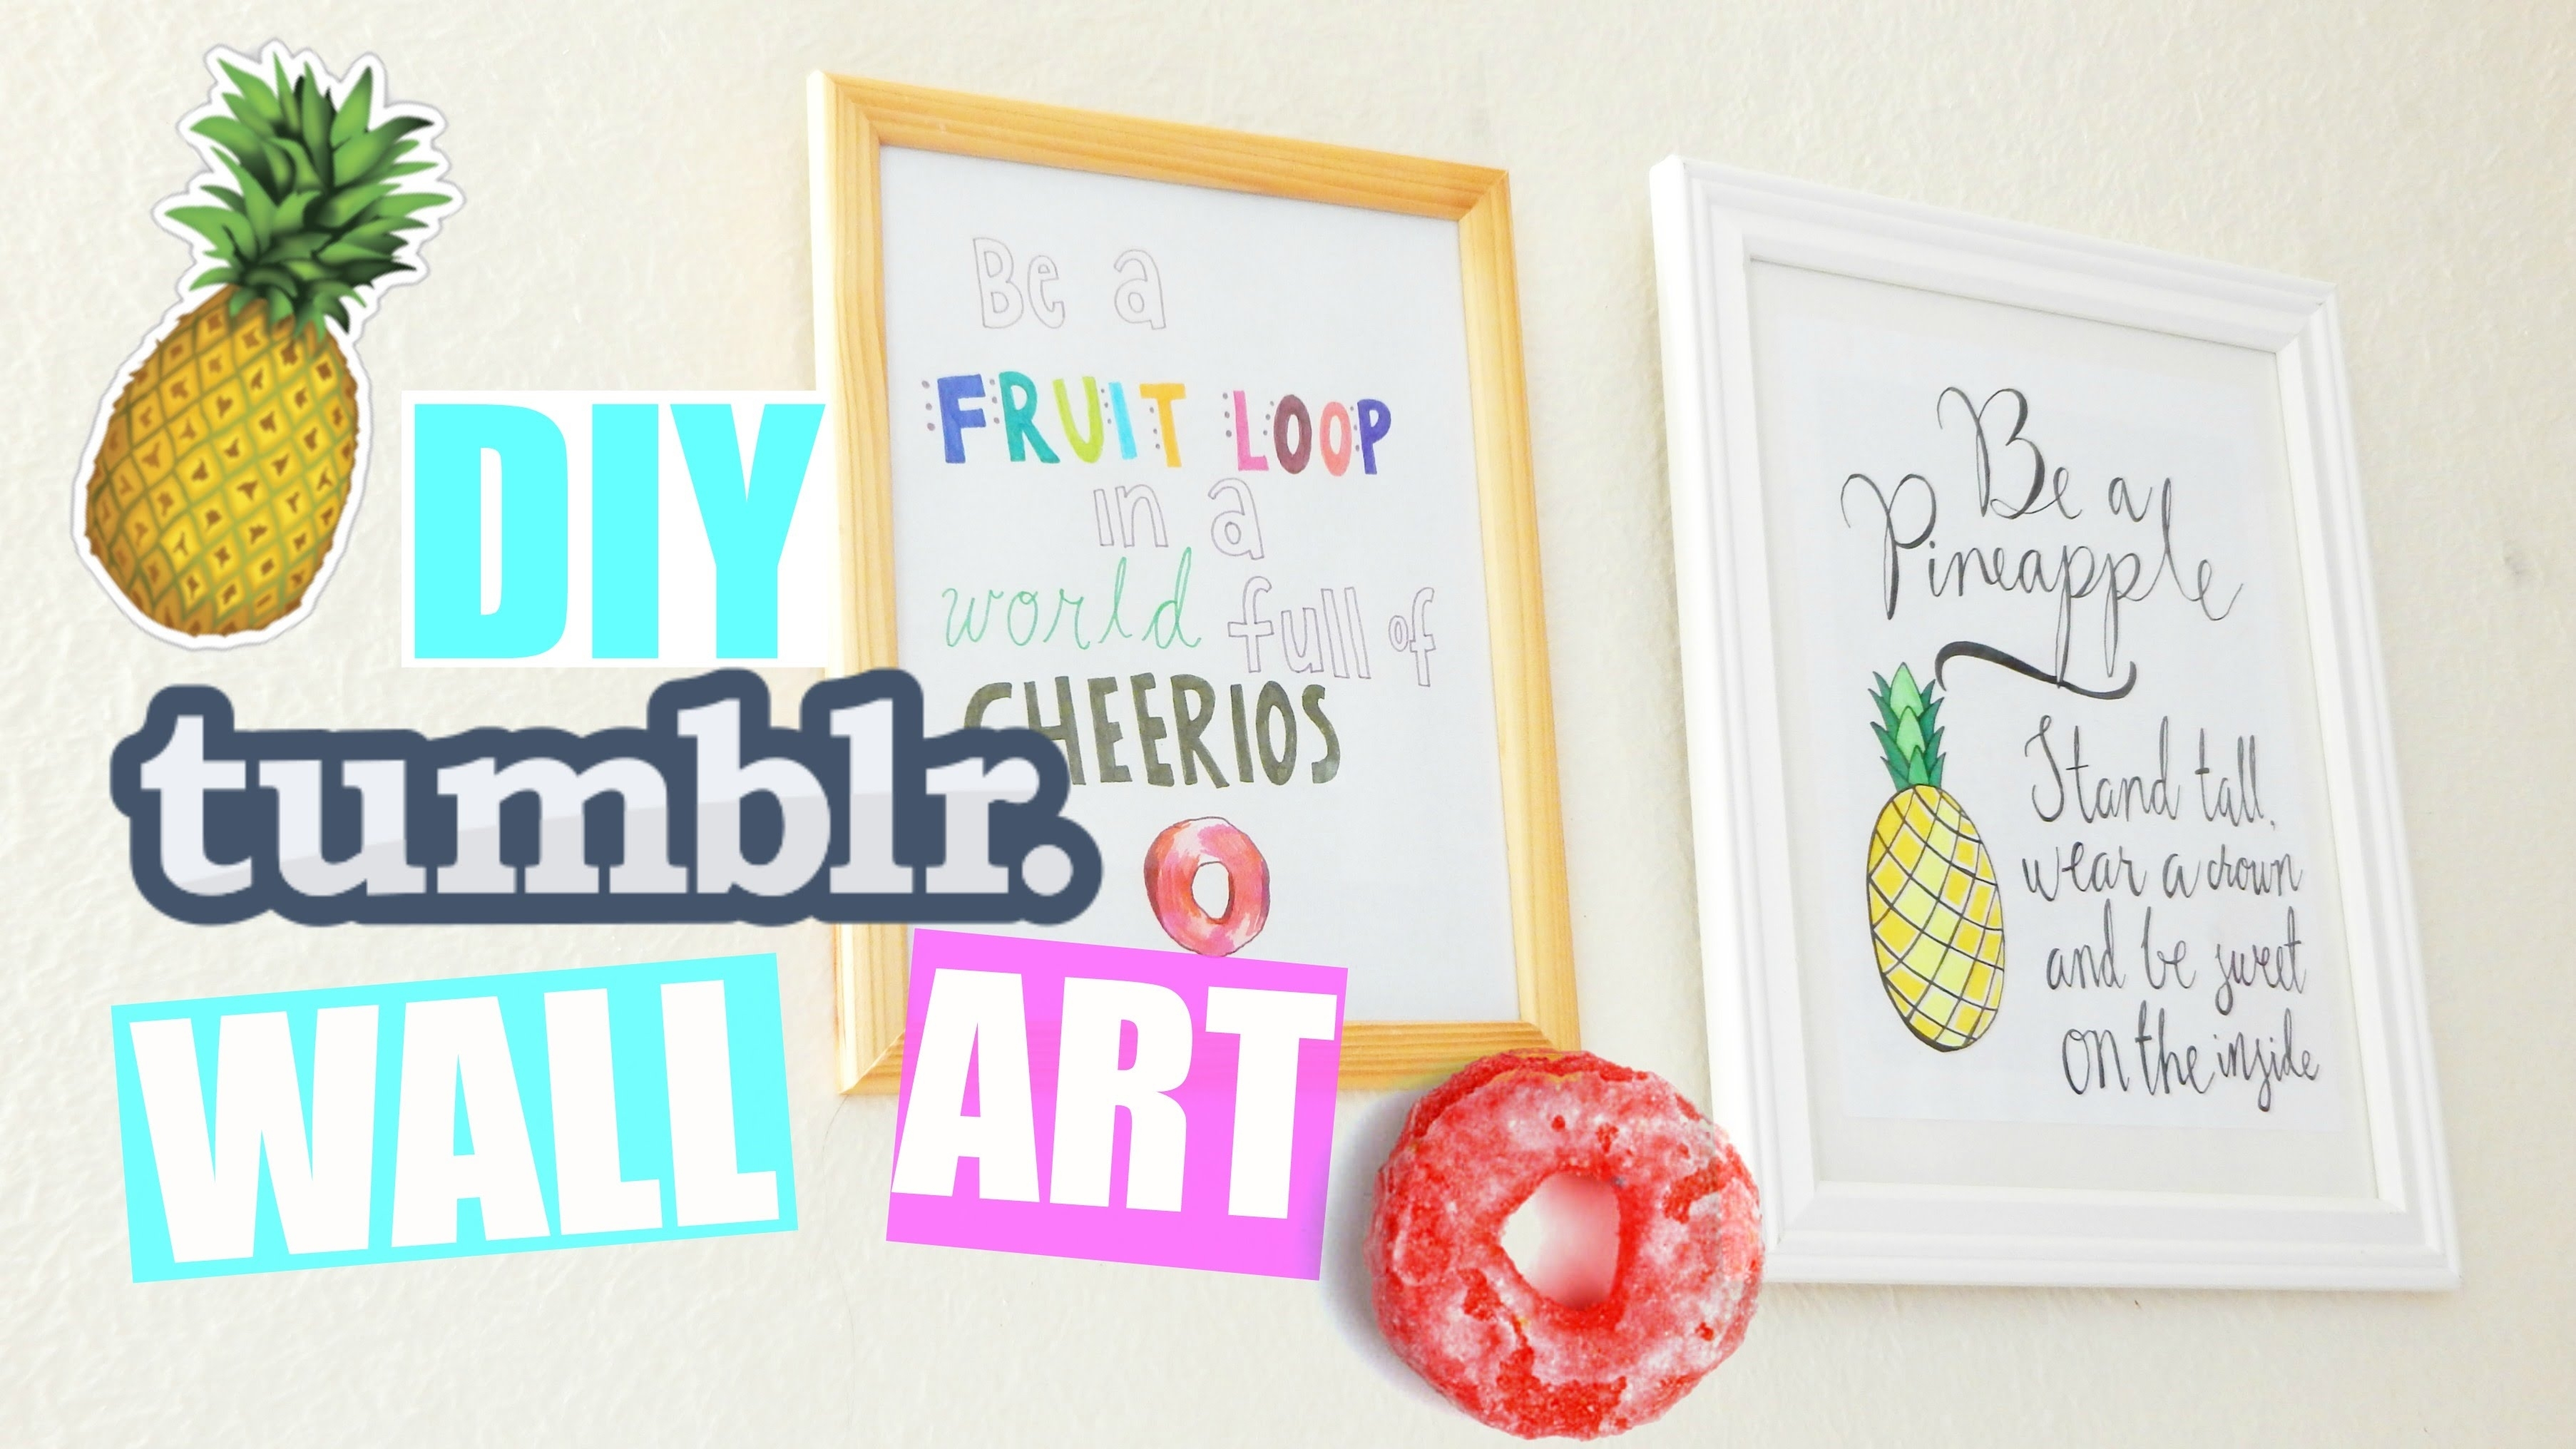 Diy Quote Wall Art Room Decor! |Pastelpandaz – Youtube Pertaining To Most Current Wall Art Quotes (View 4 of 20)